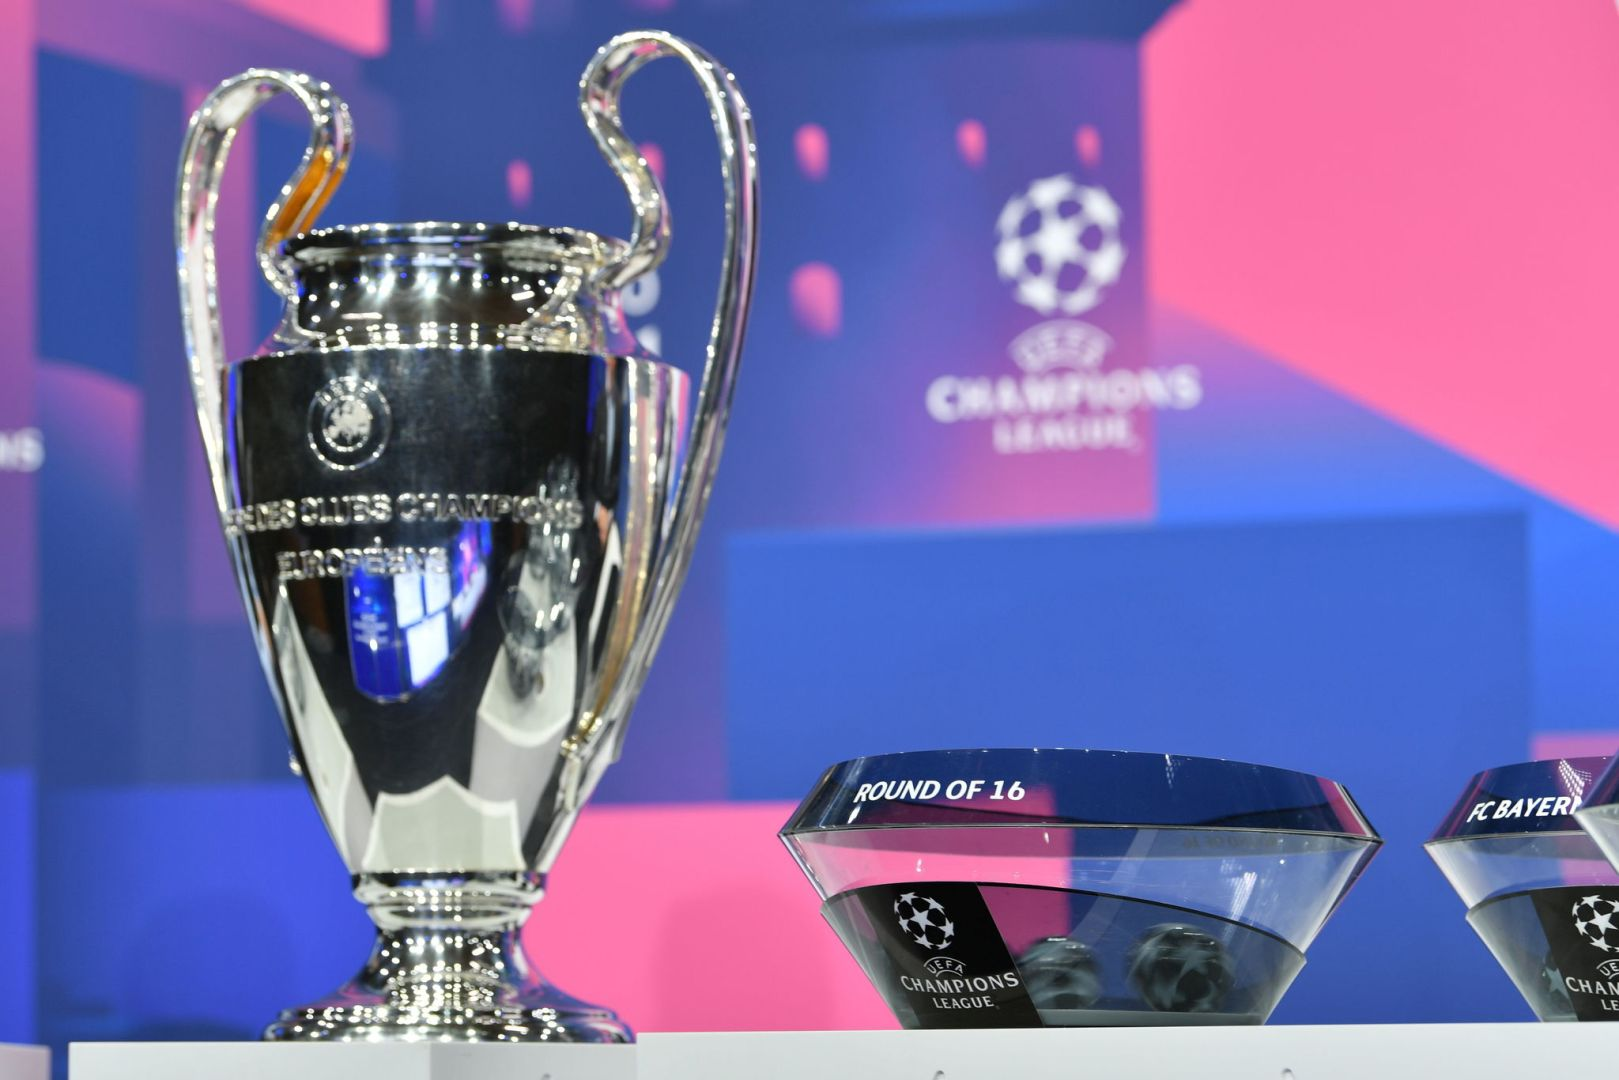 #UCL Round Of 16 Draw: Barcelona plays PSG, Atletico Madrid faces Chelsea